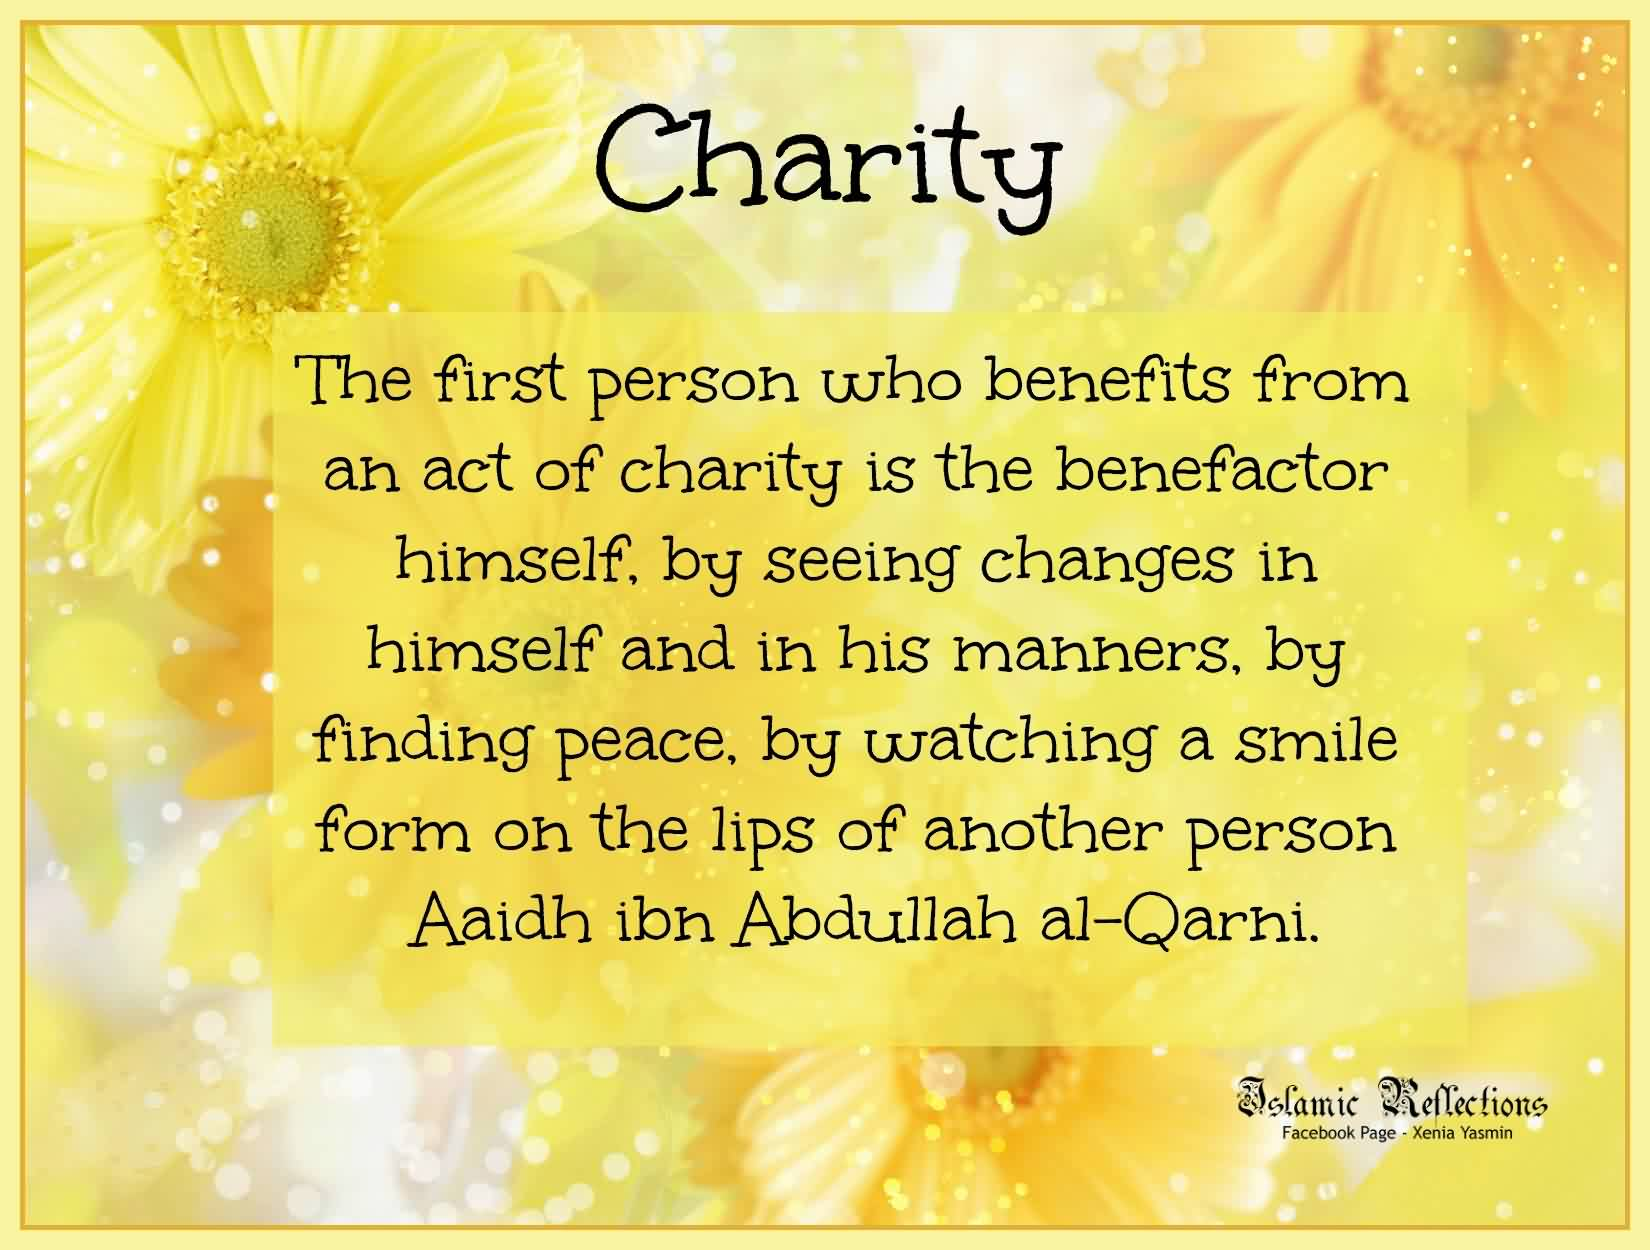 Beautiful Charity Quote ~ The First Person who benefits from an act of charity is the benefactor himself.